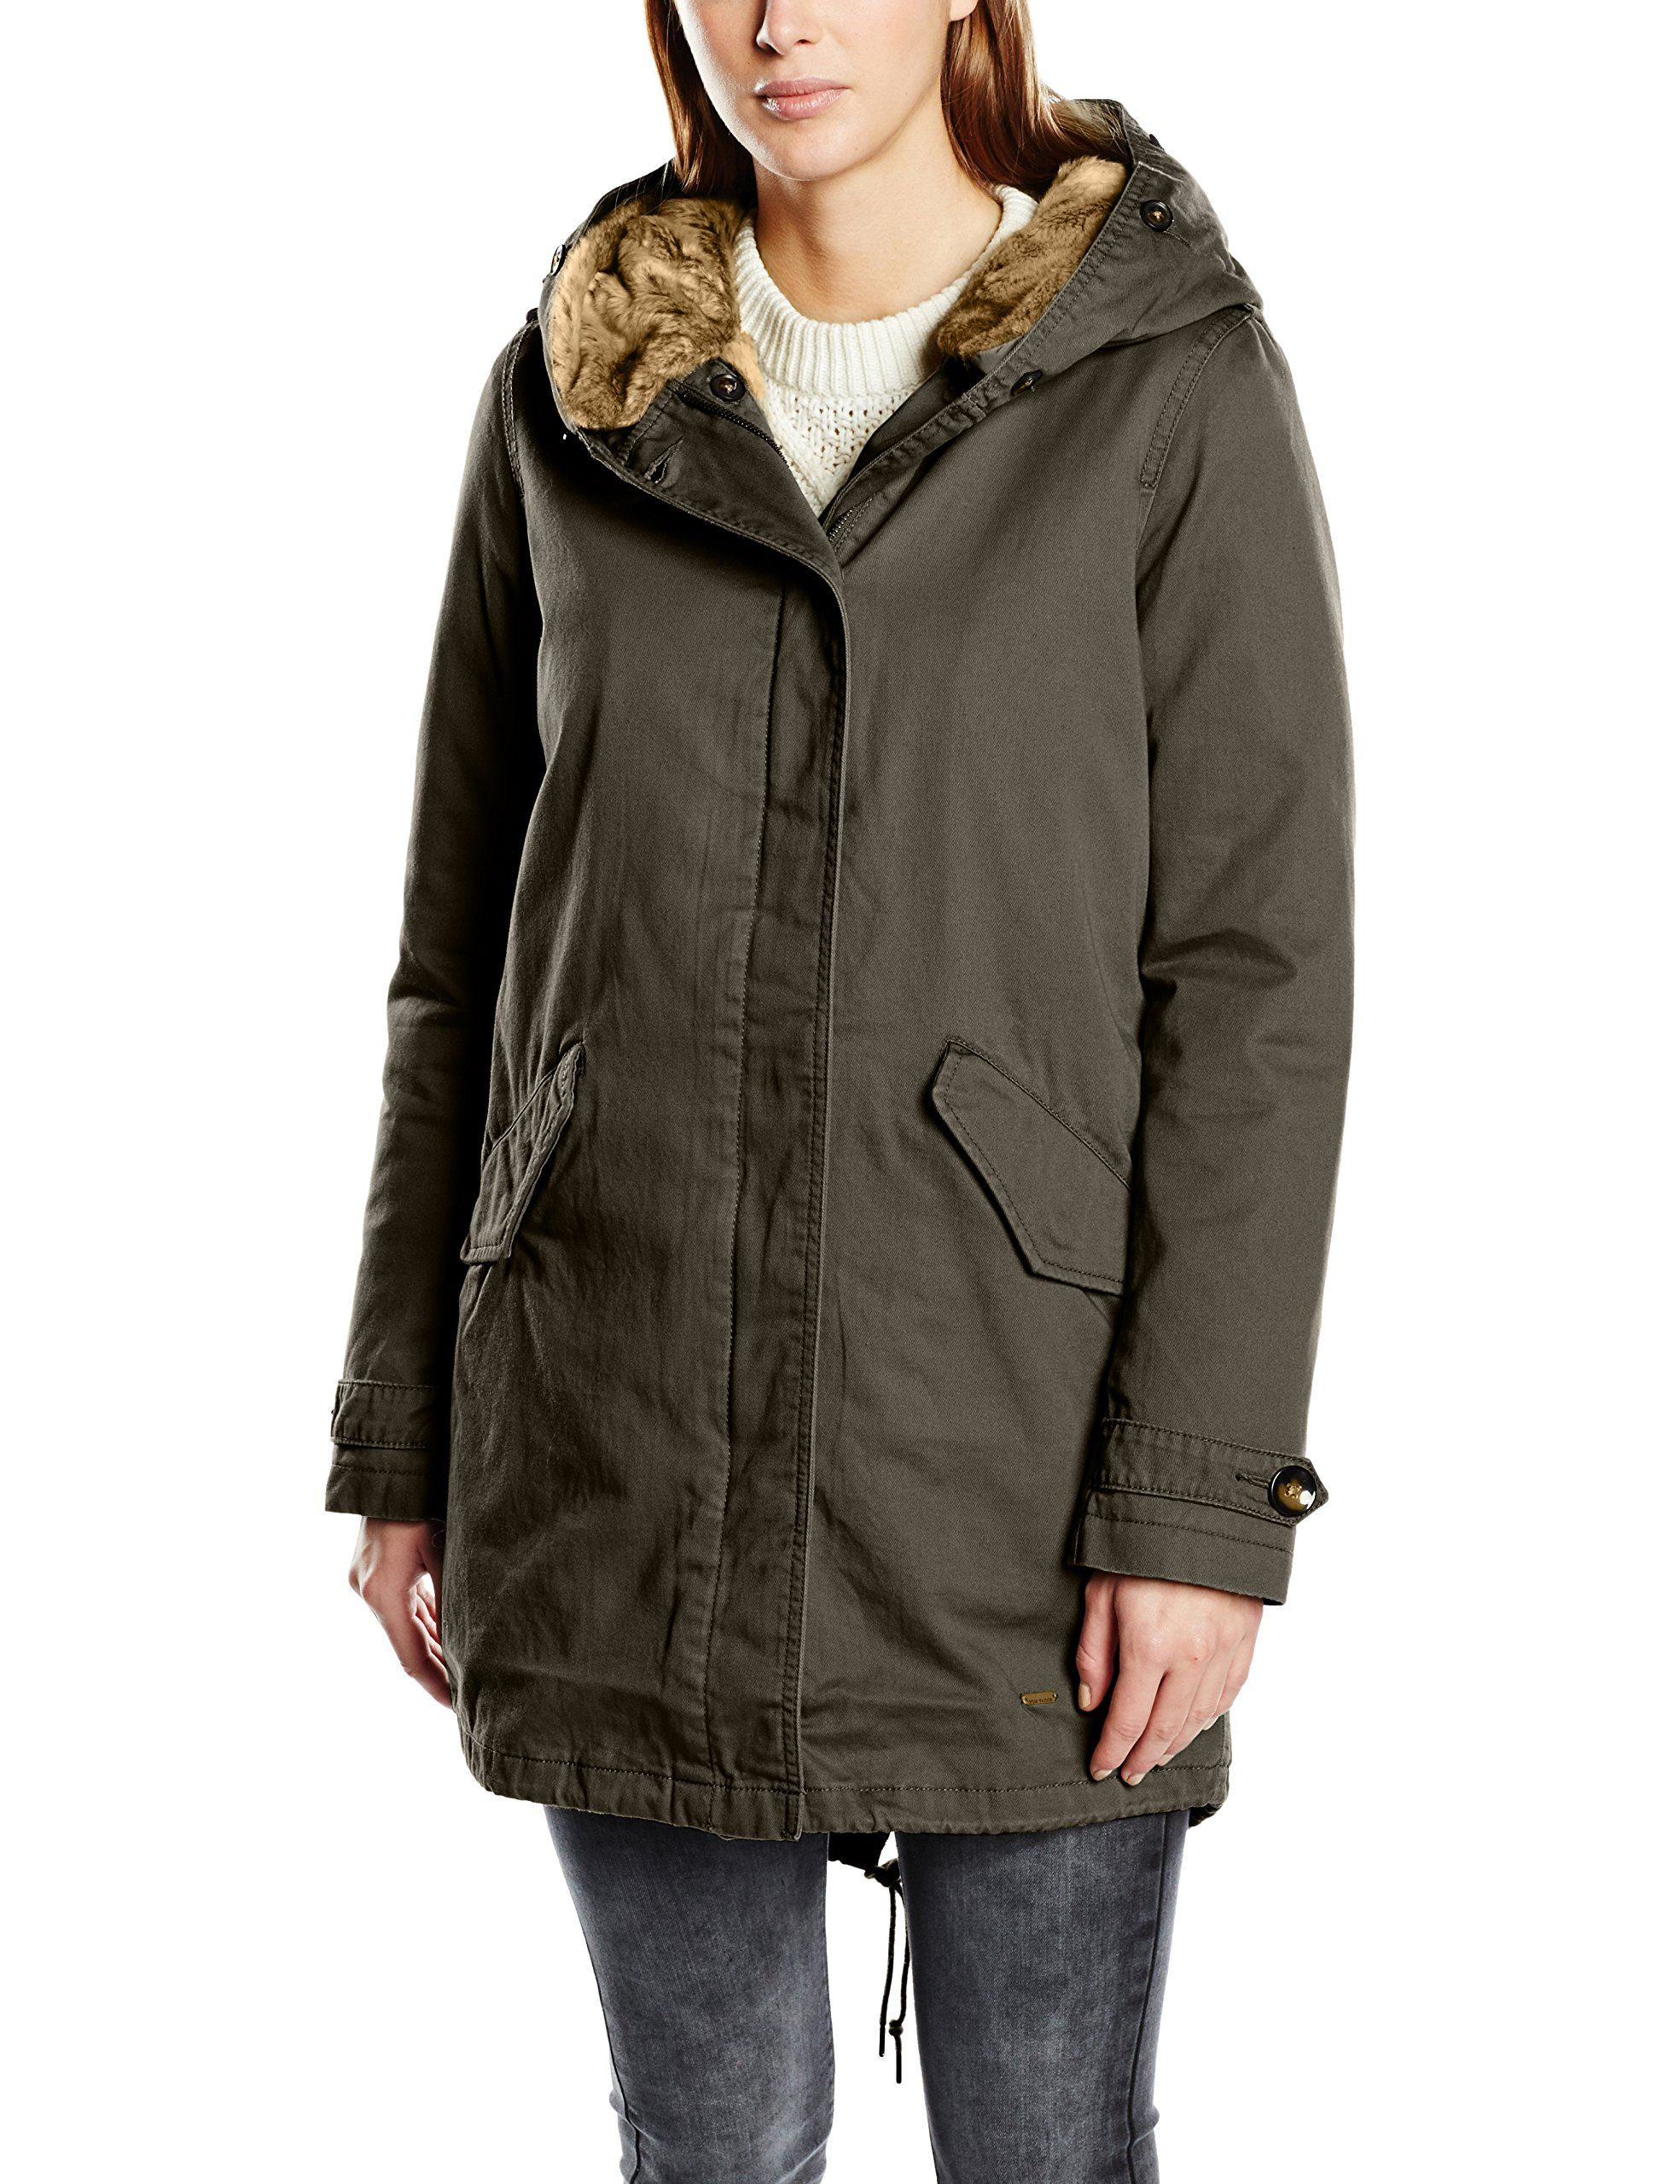 Tom tailor winterjacke oliv